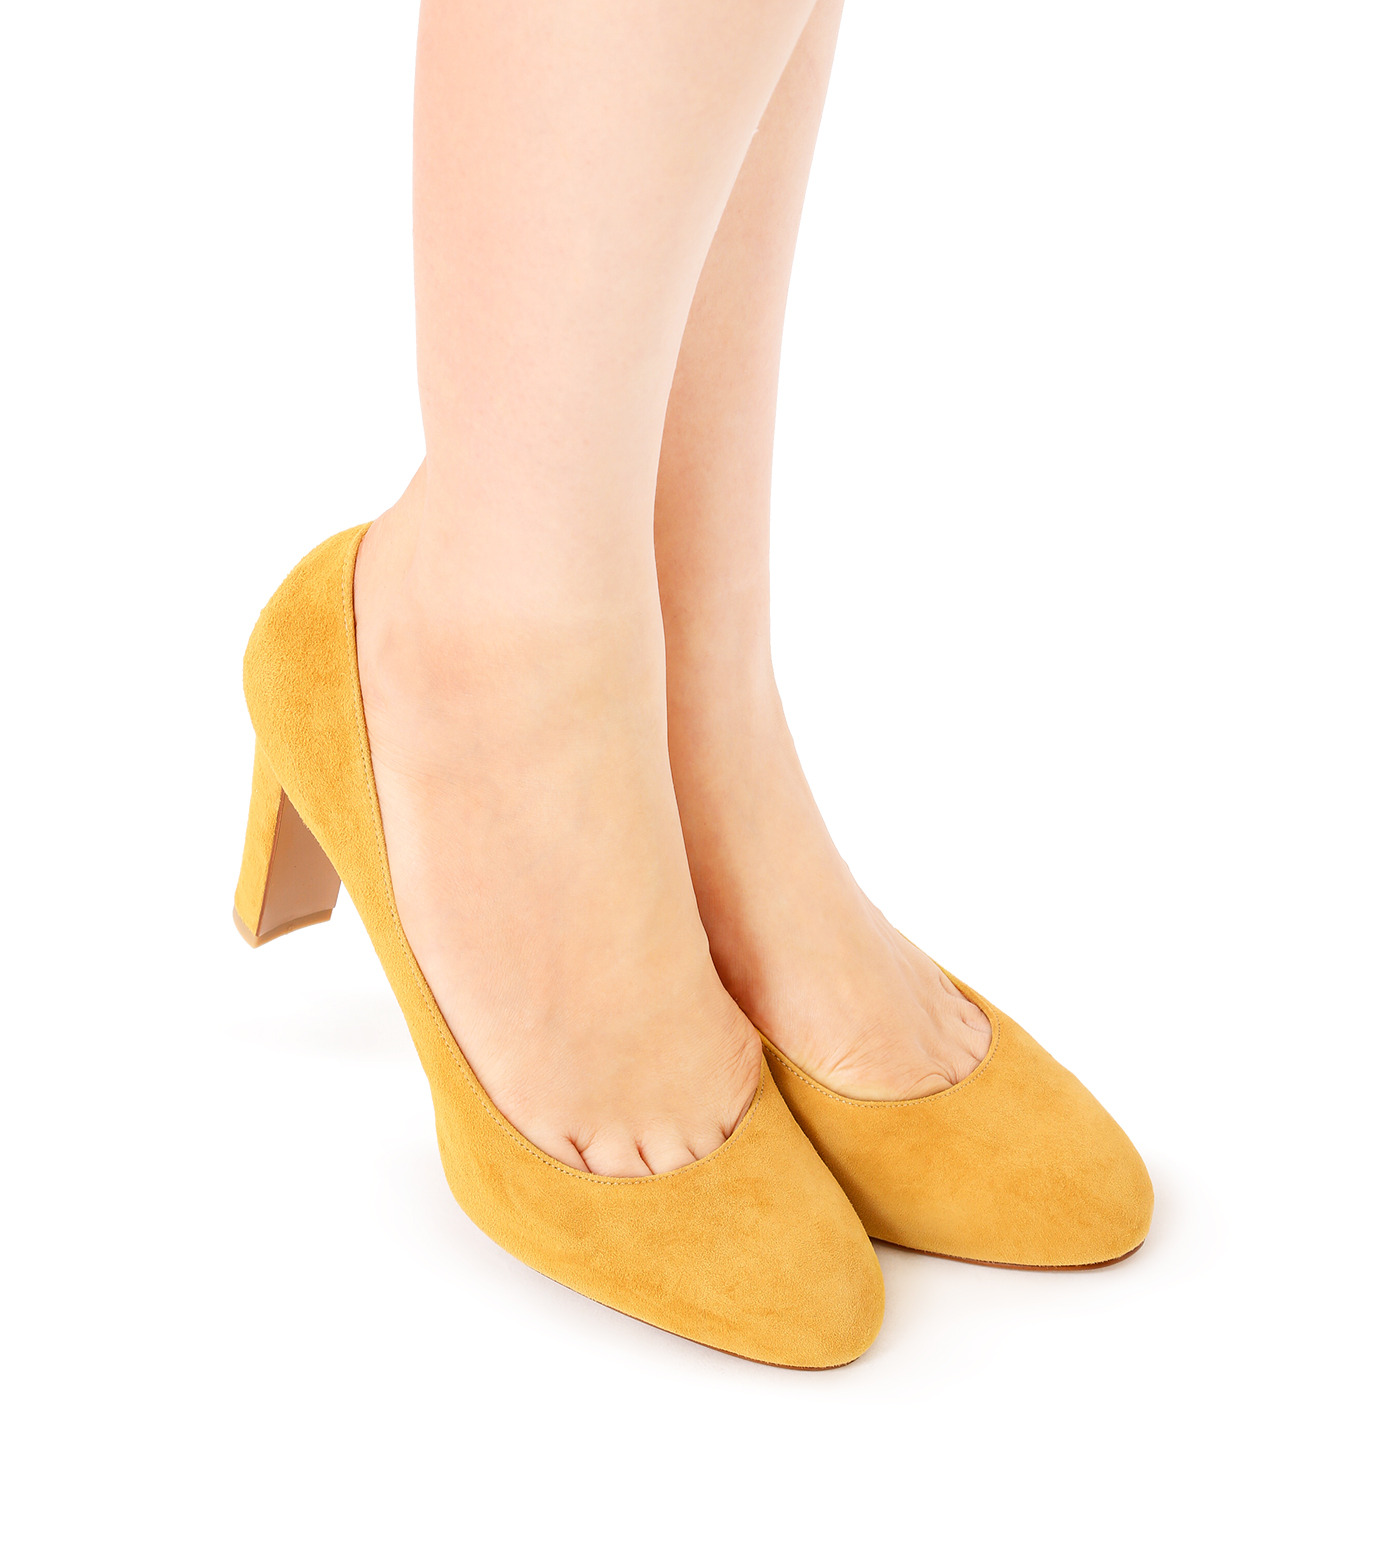 PIPPICHIC(ピッピシック)のInstorm Round Toe Pumps-YELLOW(パンプス/pumps)-PP16-IRP26-L 拡大詳細画像5